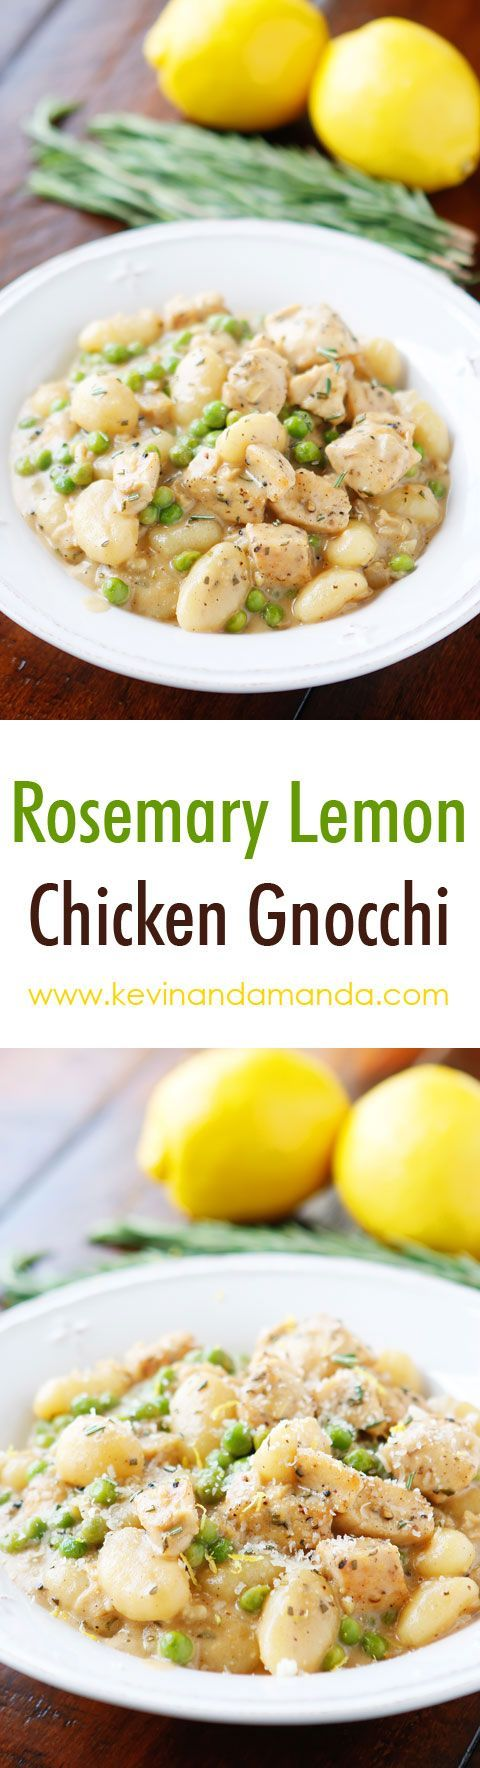 Rosemary Lemon Chicken Gnocchi - Garlic chicken and toasted potato gnocchi in a rosemary lemon cream sauce. Great for easy weeknight dinners AND impressing guests.